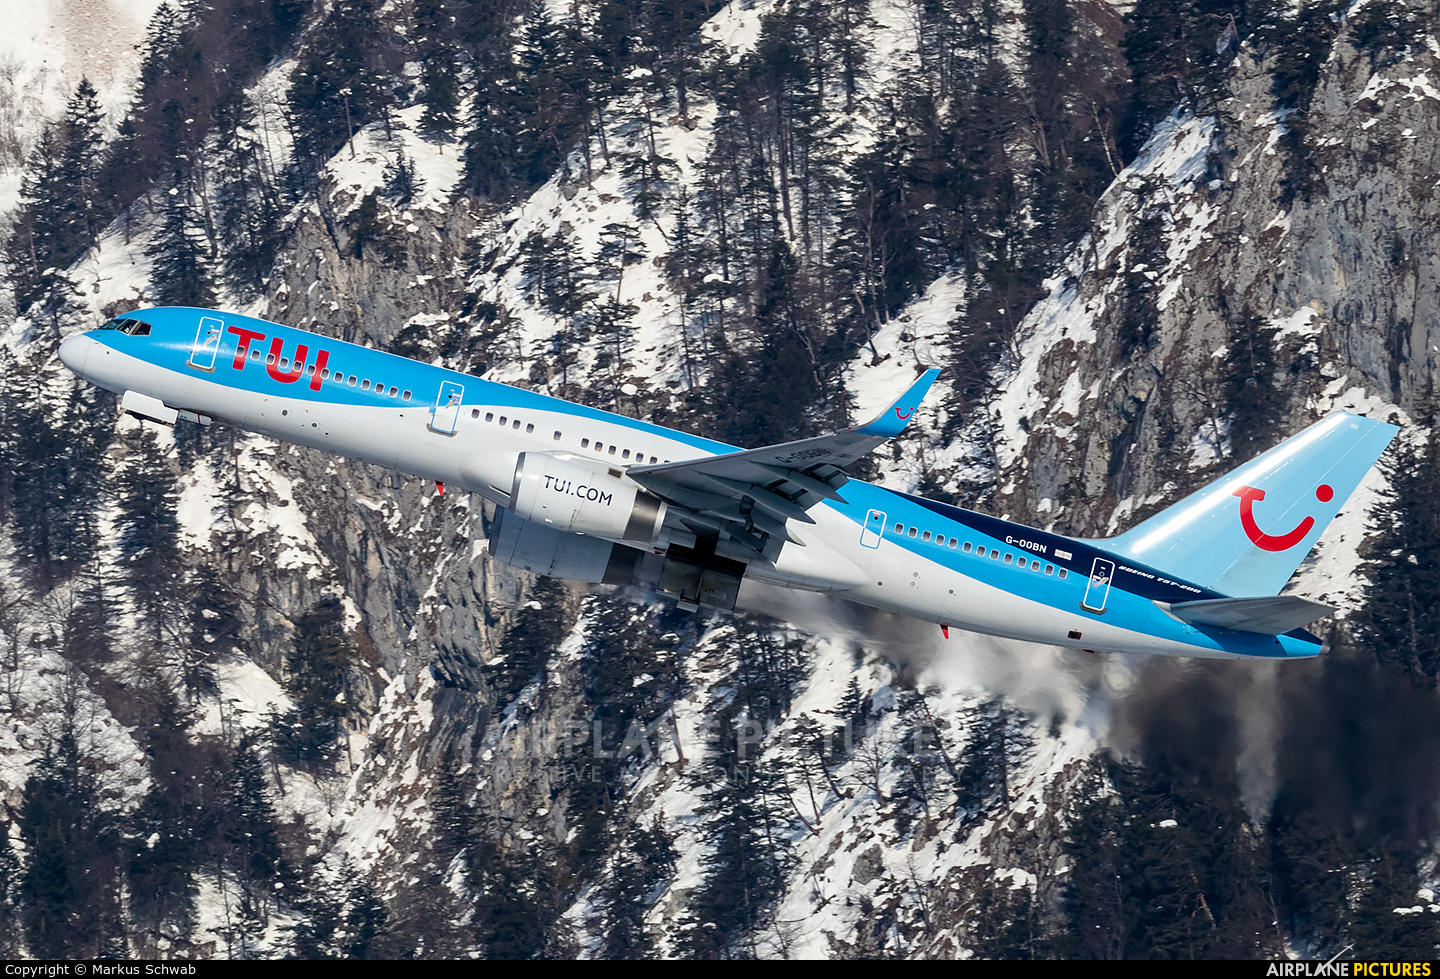 TUI Airways G-OOBN aircraft at Innsbruck